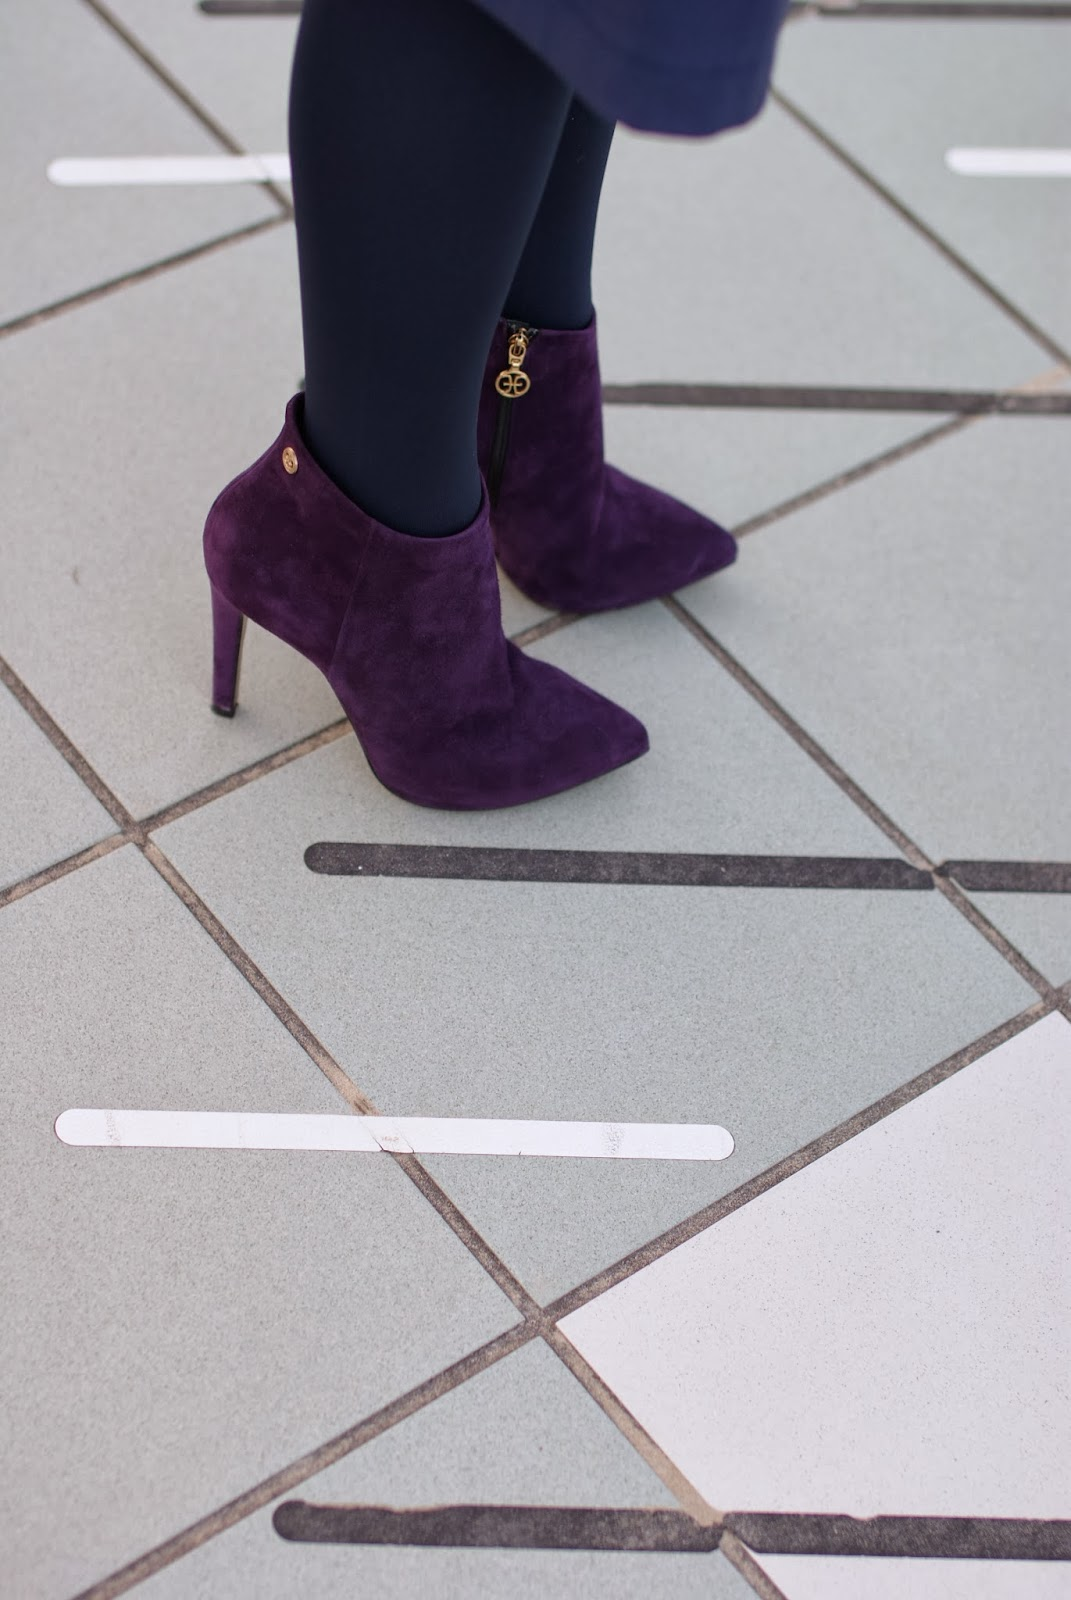 Fabi shoes, purple suede ankle boots, Fashion and Cookies, fashion blogger